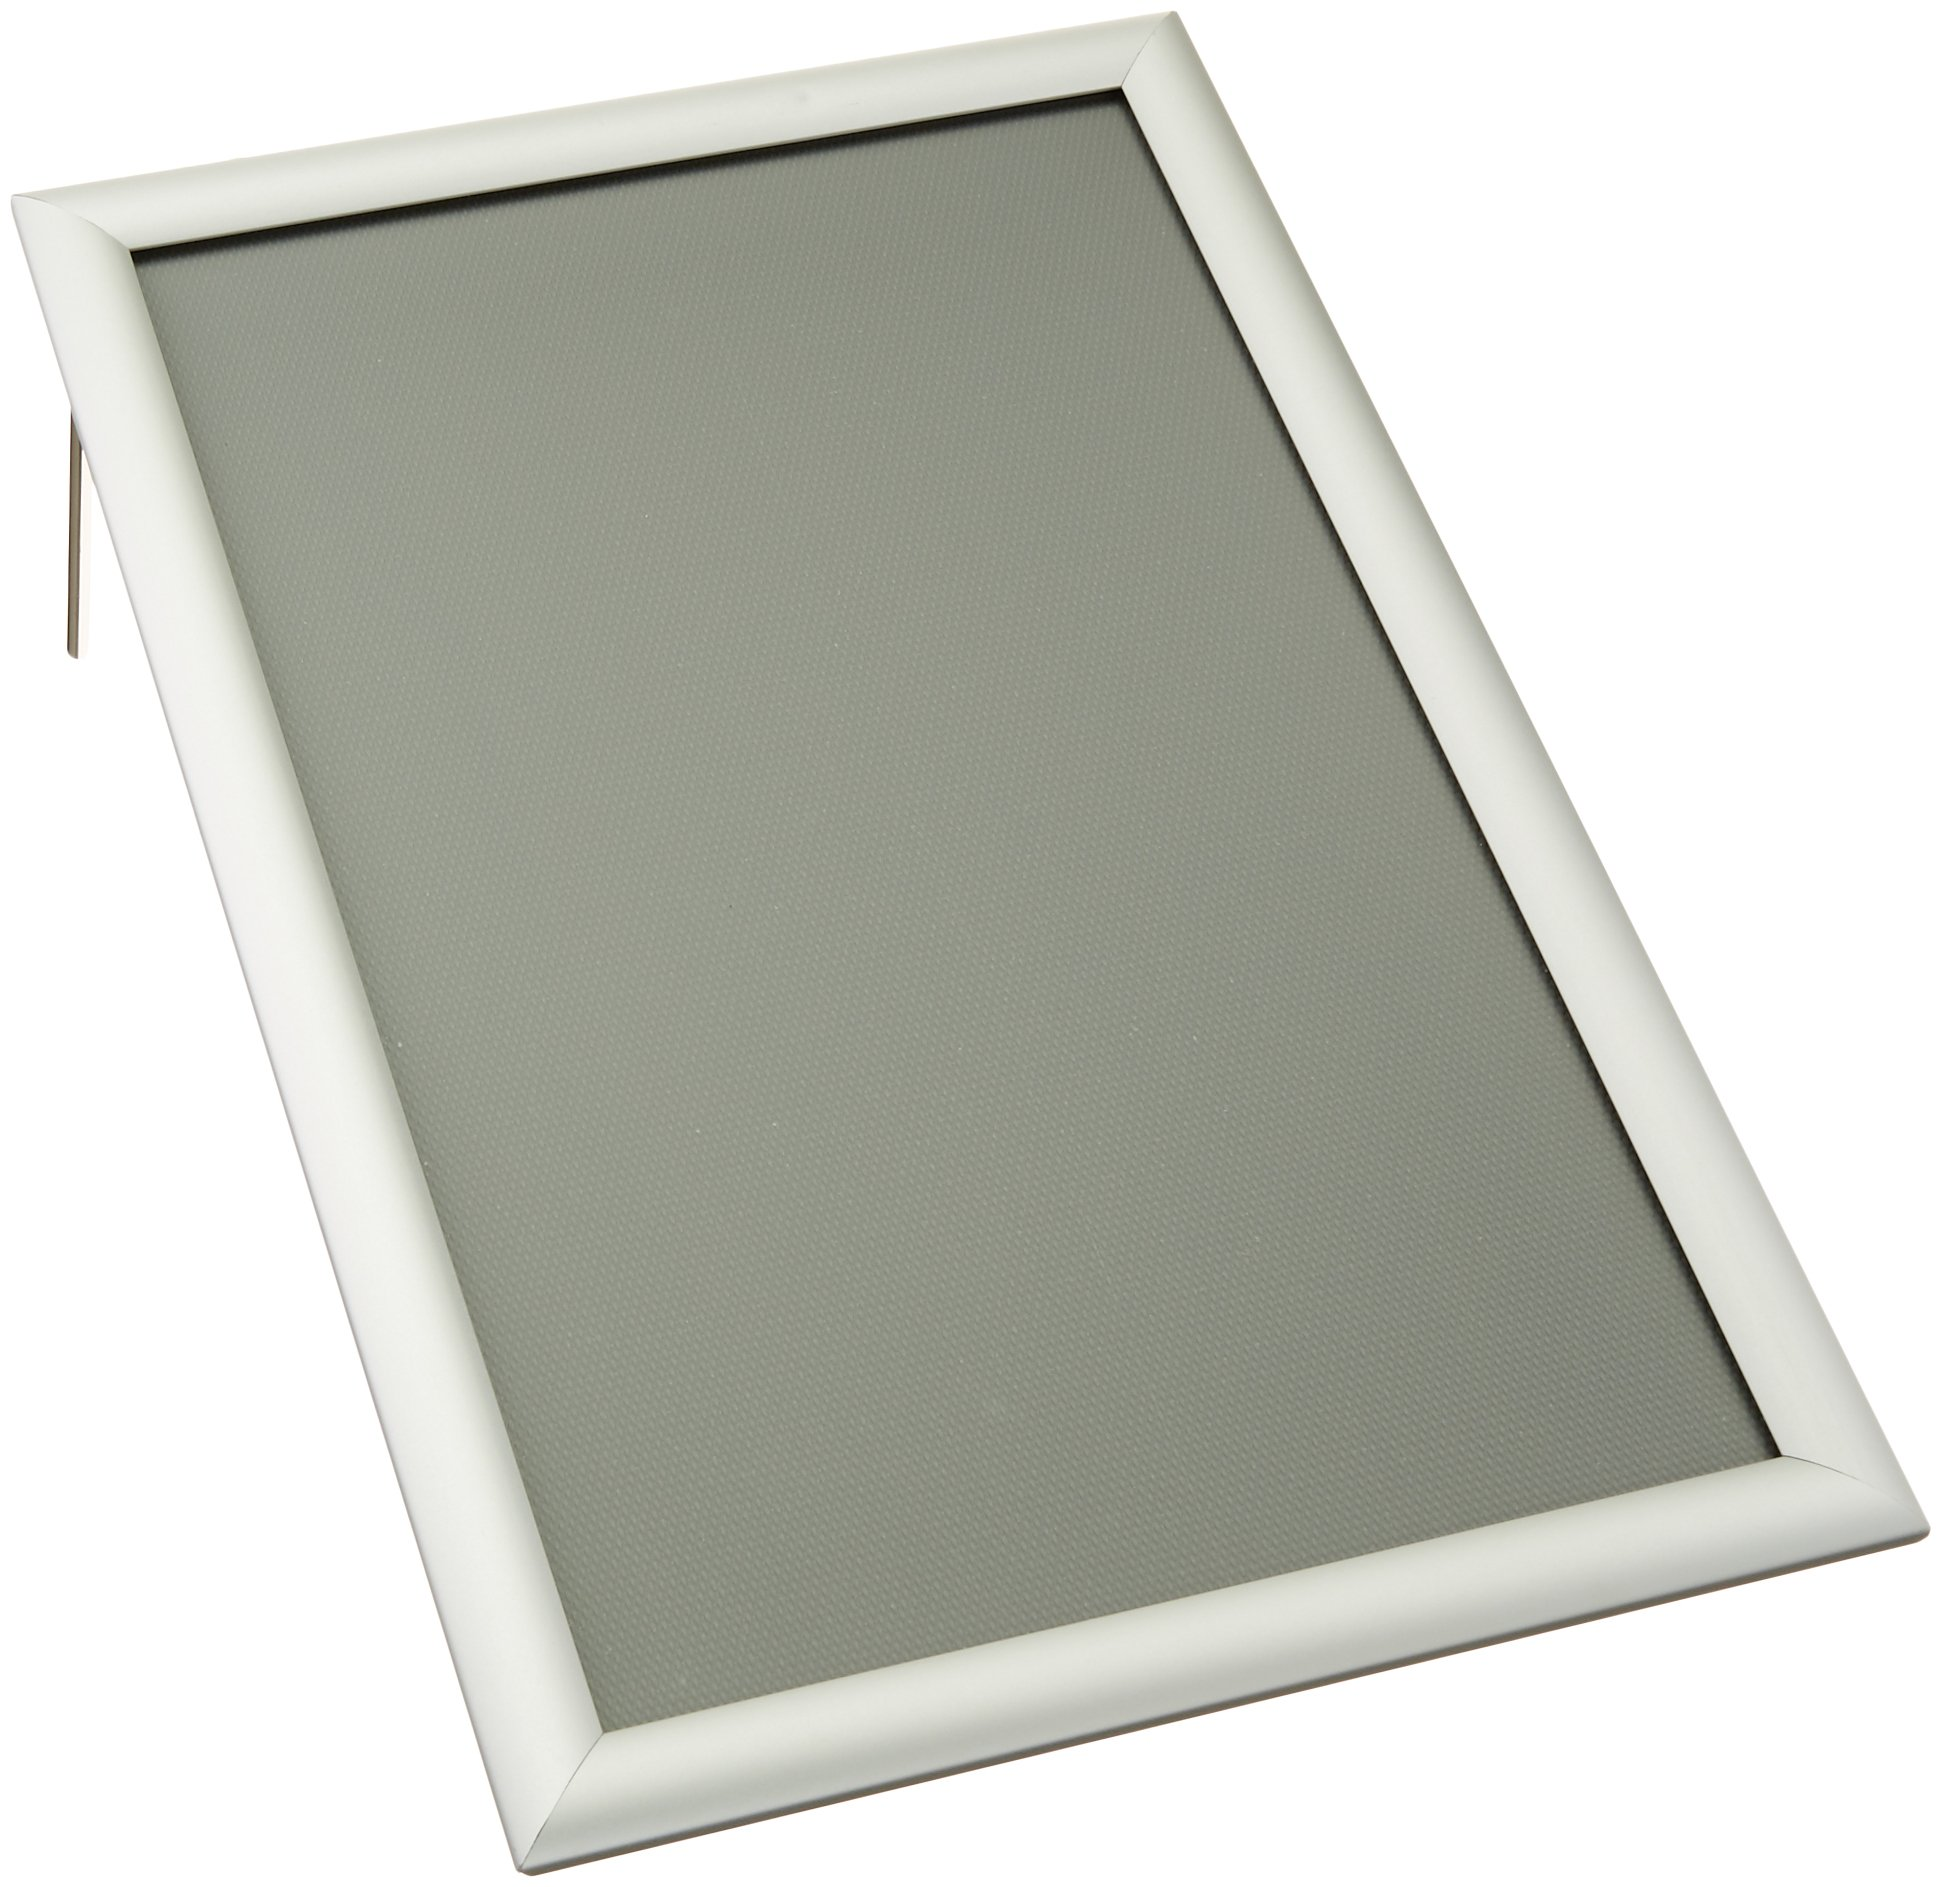 """Displays2go Sign Frame, 11"""" x 17"""", Wall Mount or Tabletop, Snap Open with Lens, Silver Aluminum (WSNF117SV)"""